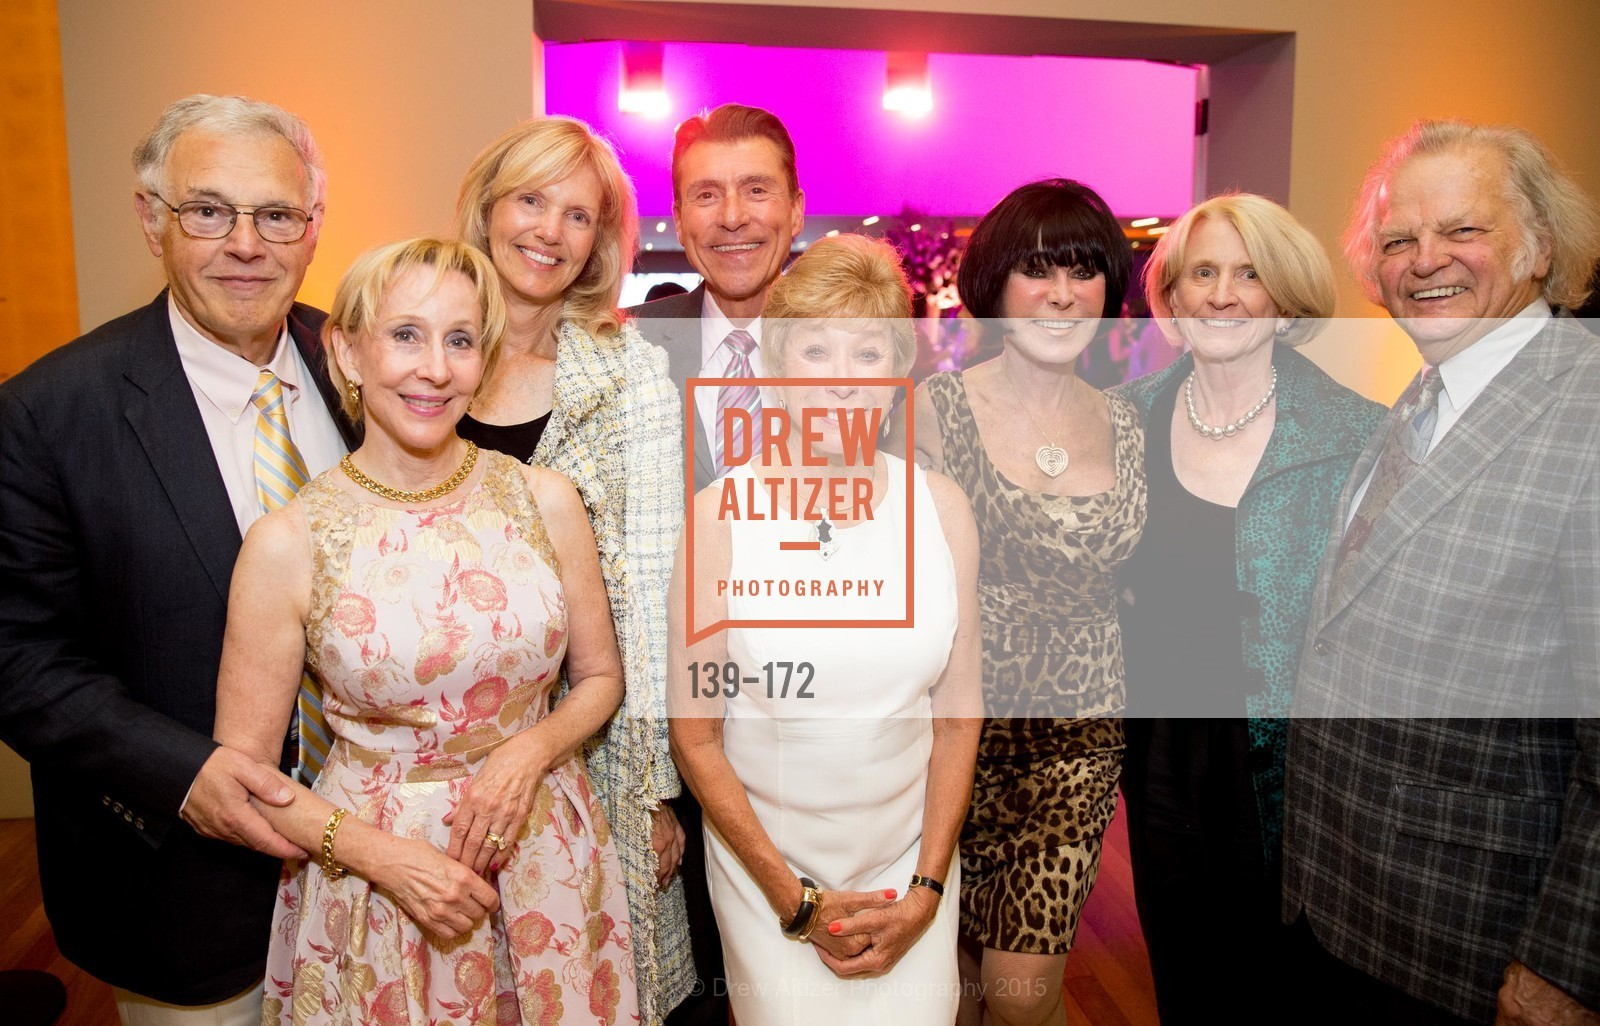 John Lavorgna, Pamela Rigg, Andrea Schultz, Robert Beadle, Maria Pitcairn, Marilyn Cabak, Joan Lavorgna, Michael Cabak, J.M.W. Turner: Painting Set Free opening reception, de Young Museum, June 17th, 2015,Drew Altizer, Drew Altizer Photography, full-service event agency, private events, San Francisco photographer, photographer California